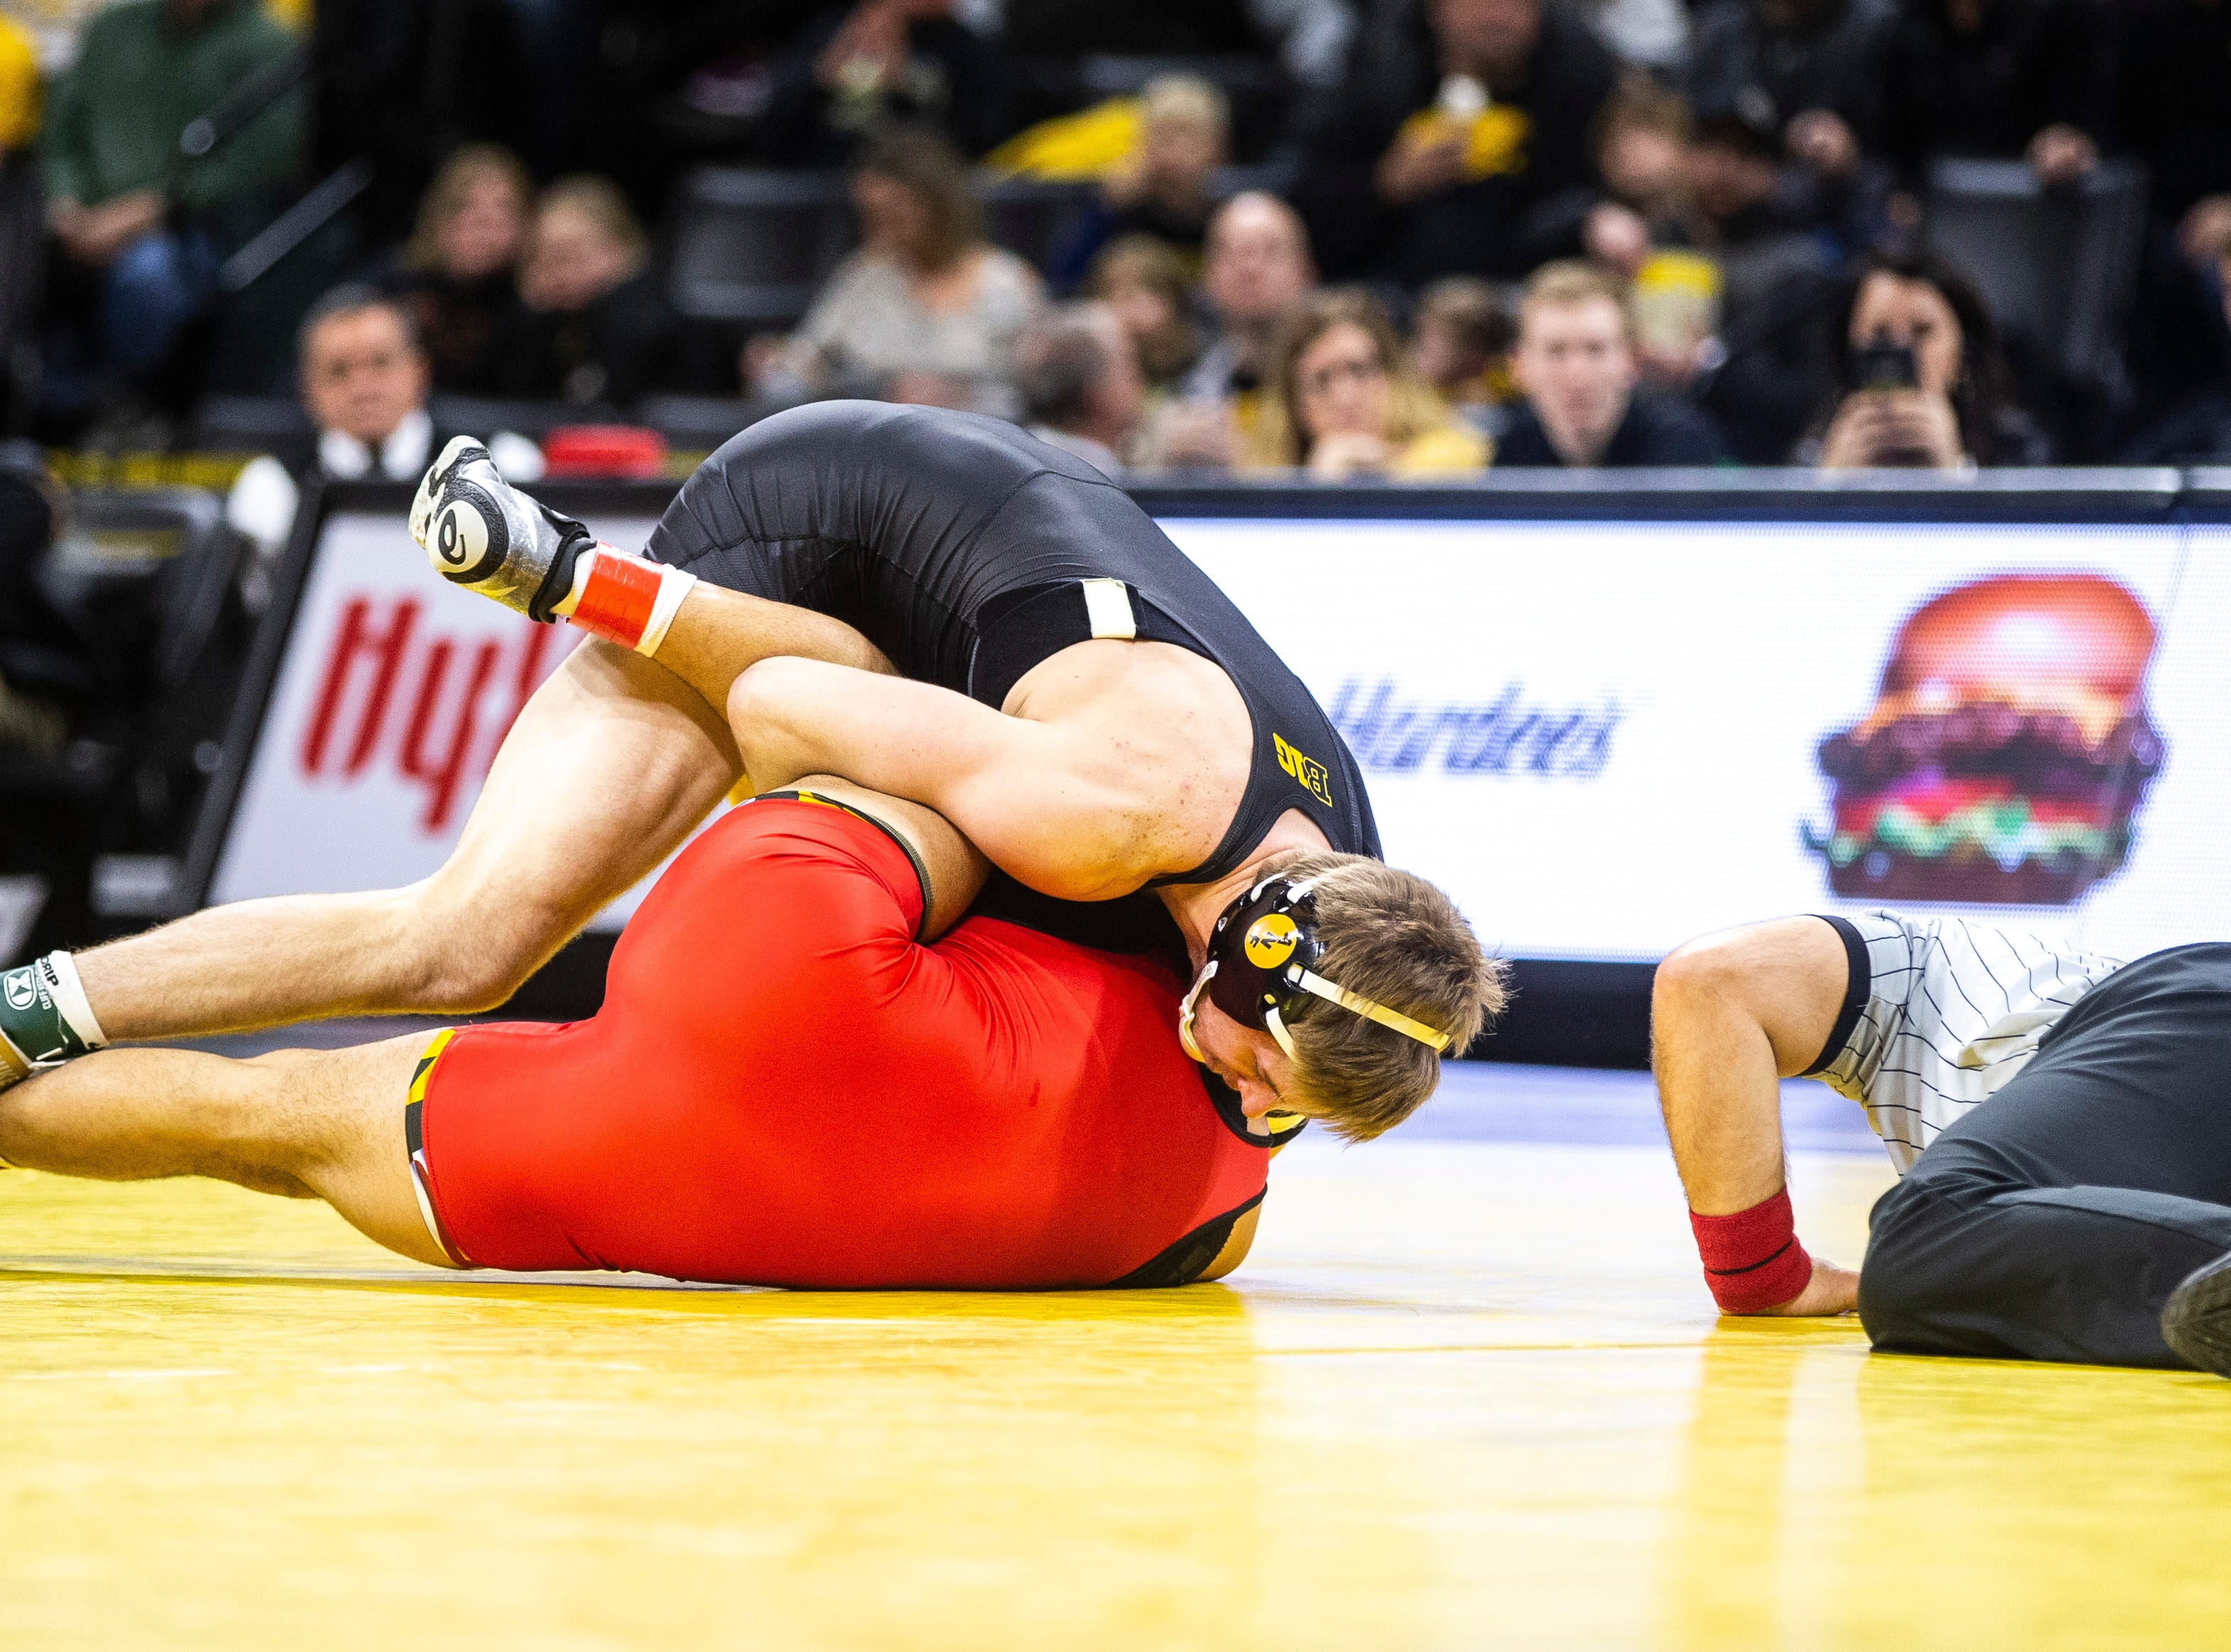 Iowa's Mitch Bowman works to pin Maryland's Josh Uglade at 174 during a NCAA Big Ten Conference wrestling dual on Friday, Feb. 8, 2019 at Carver-Hawkeye Arena in Iowa City, Iowa.